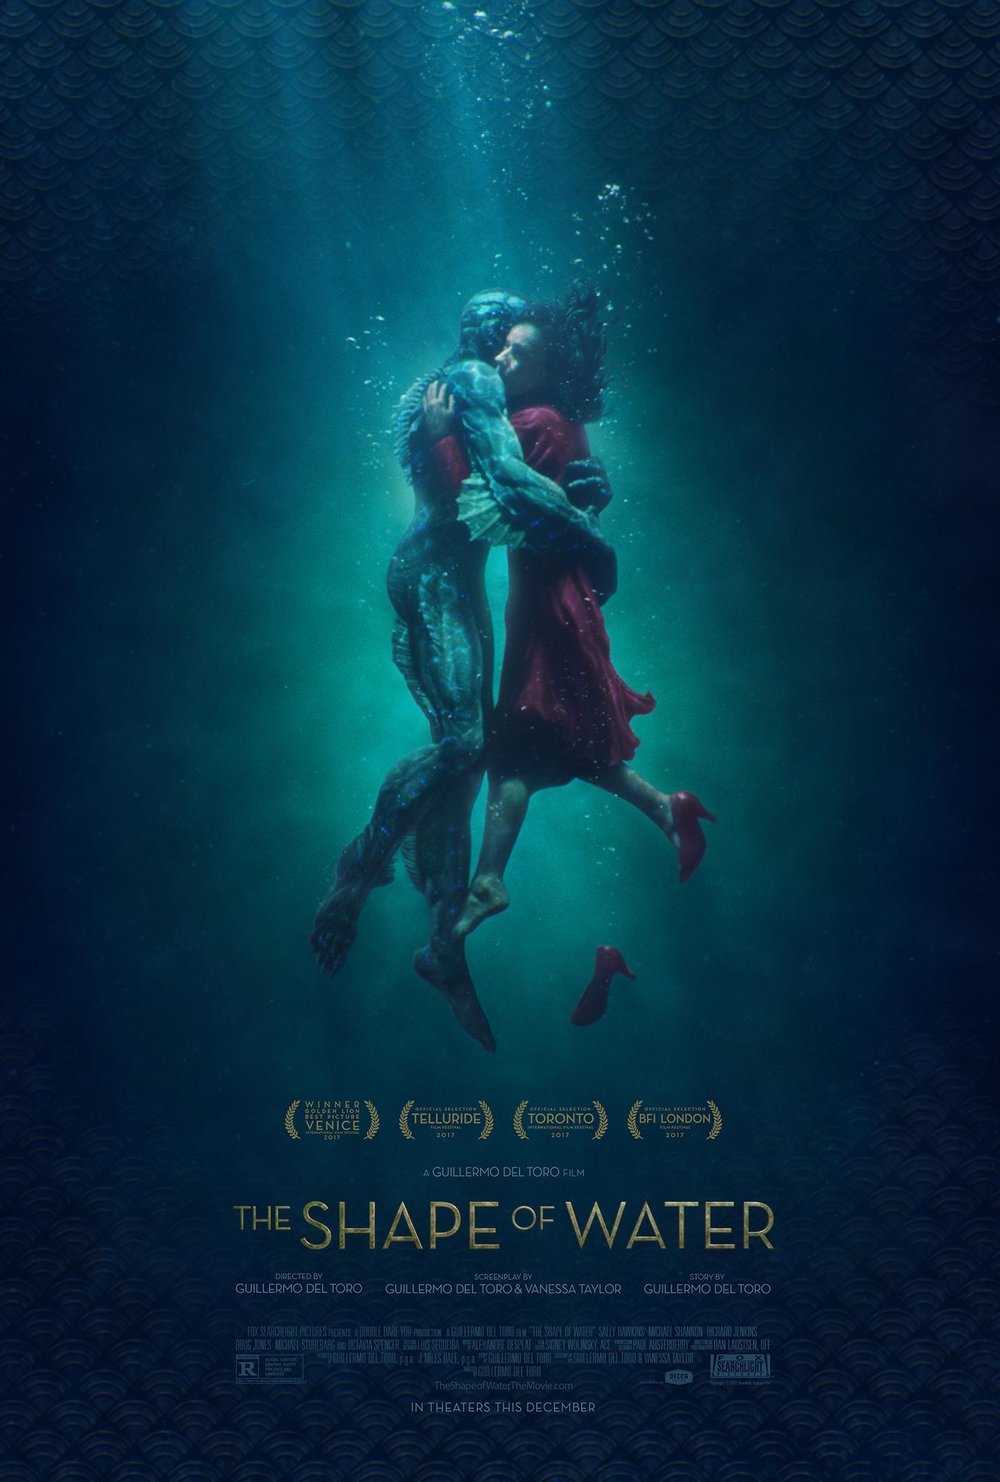 The Shape of Water   (2017) dir. Guillermo del Toro Rated: R image: ©2017  Fox Searchlight Pictures